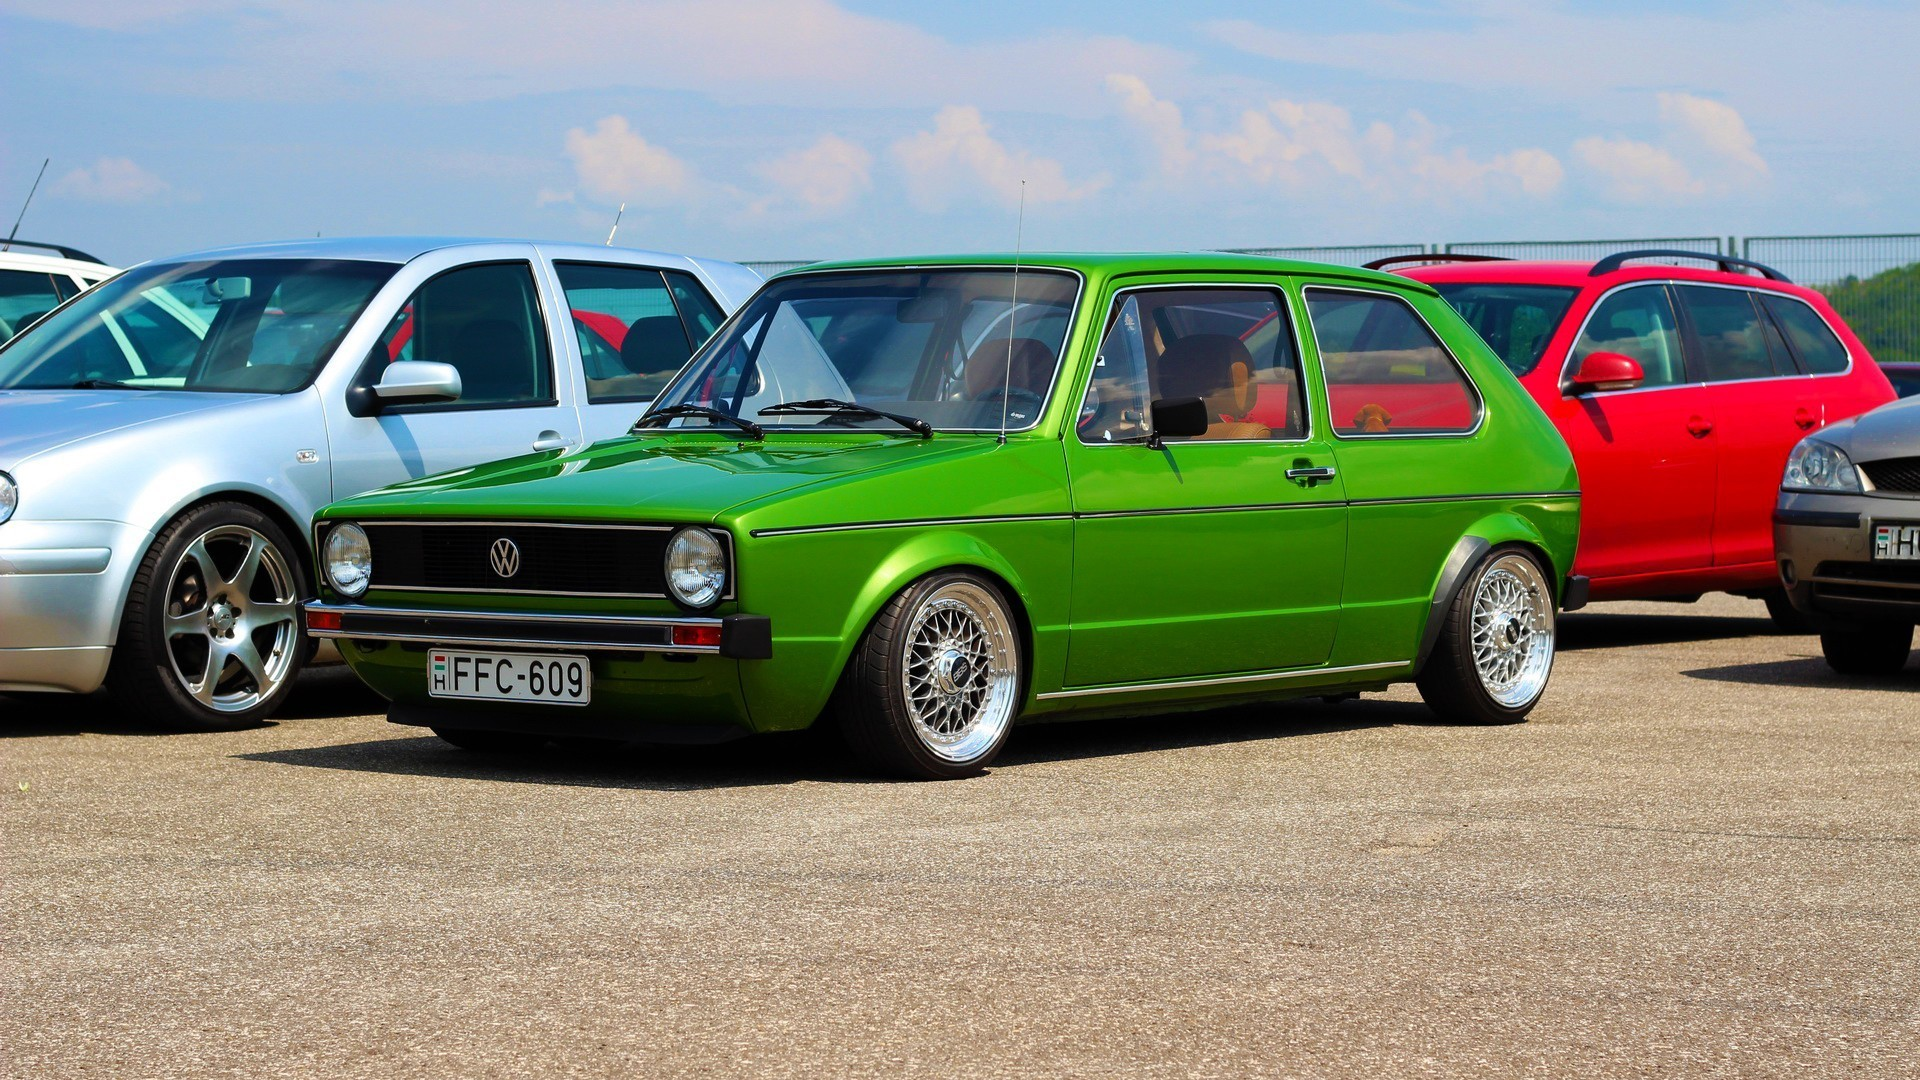 Res: 1920x1080, Volkswagen, Stance, Golf 1 Wallpapers HD / Desktop and Mobile Backgrounds